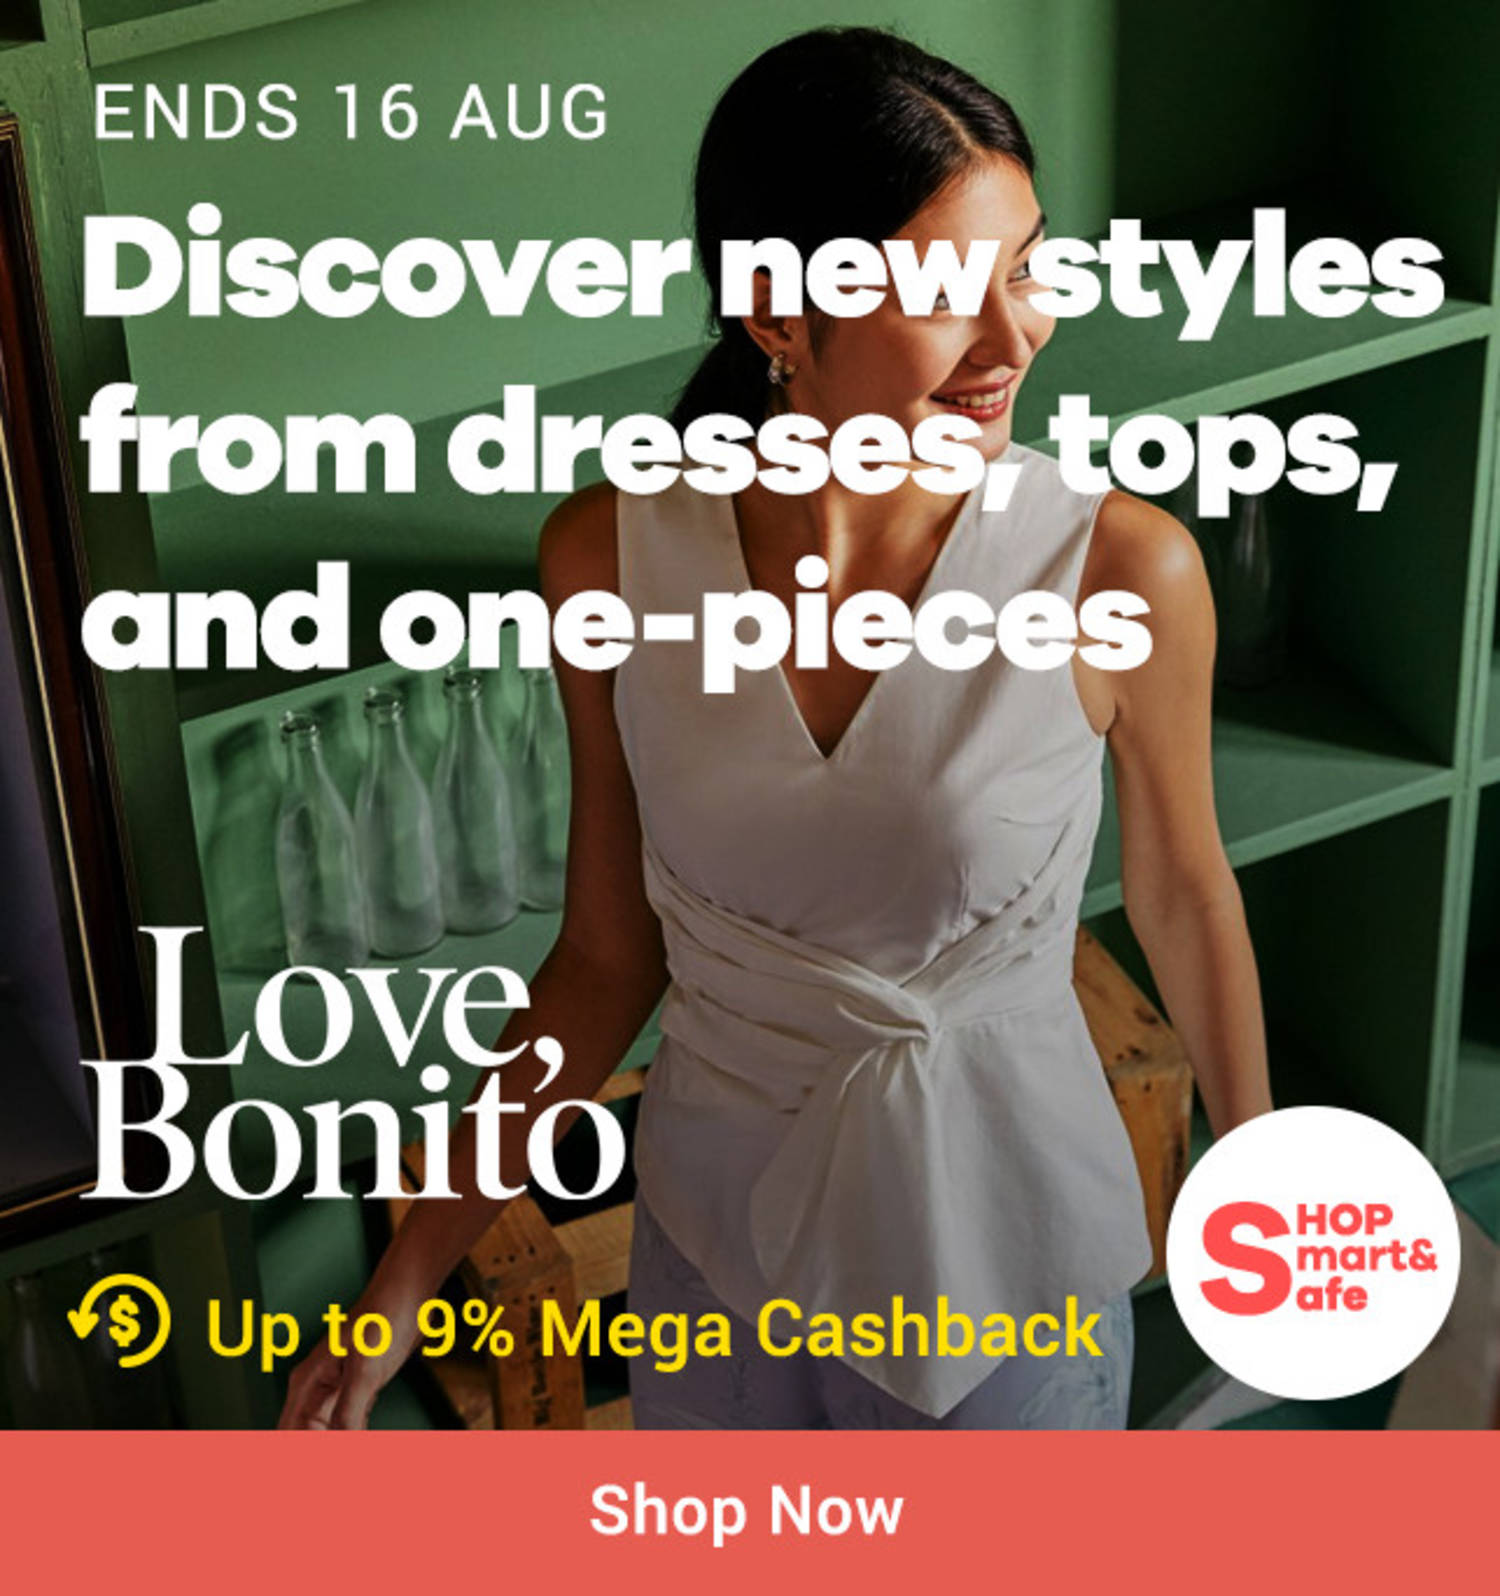 Love Bonito: Discover new styles from dresses, tops and one-pieces